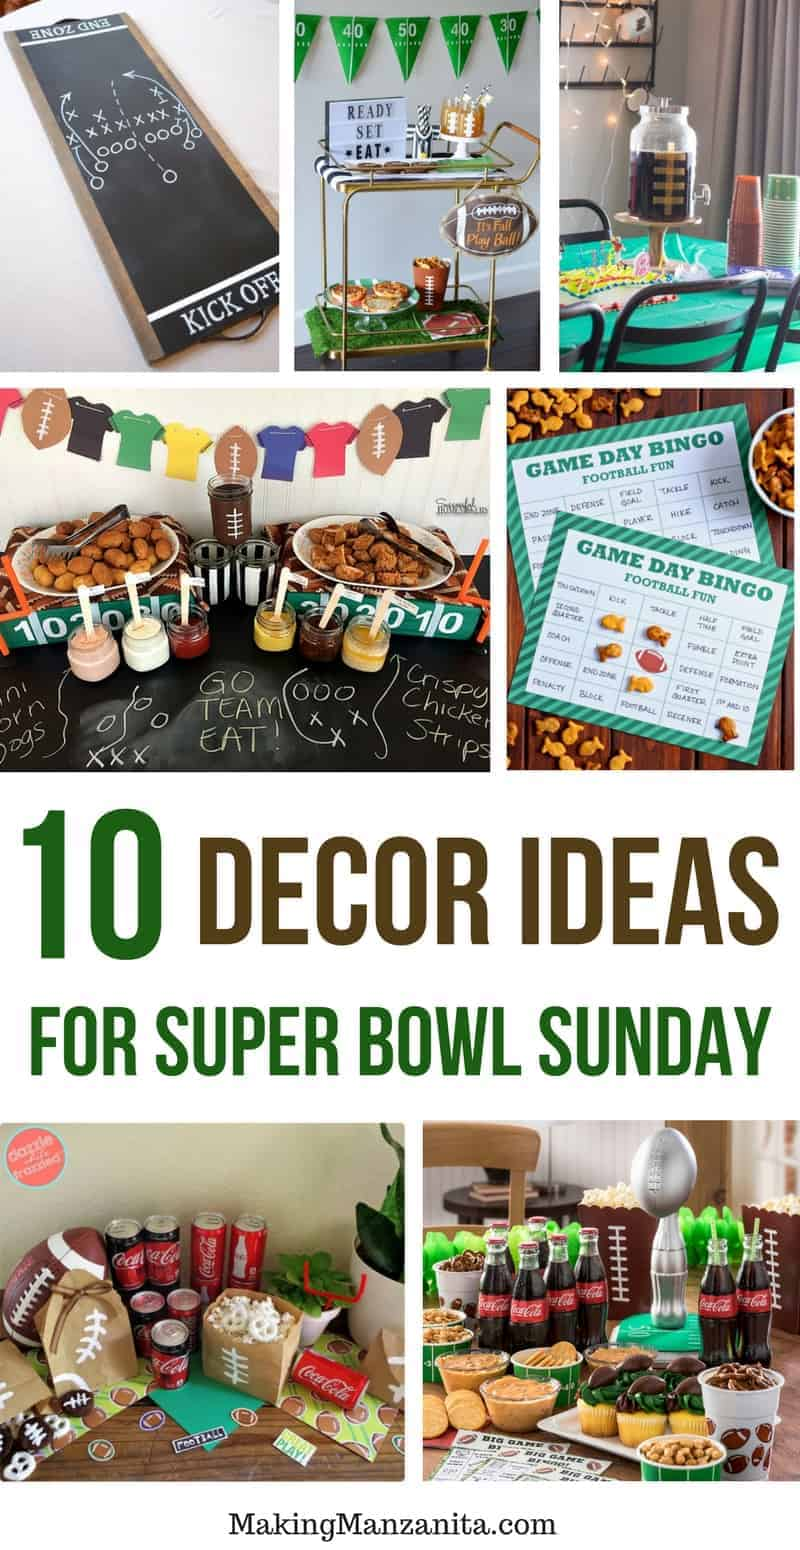 10 delicious super bowl recipes 10 creative super bowl for Super bowl party items